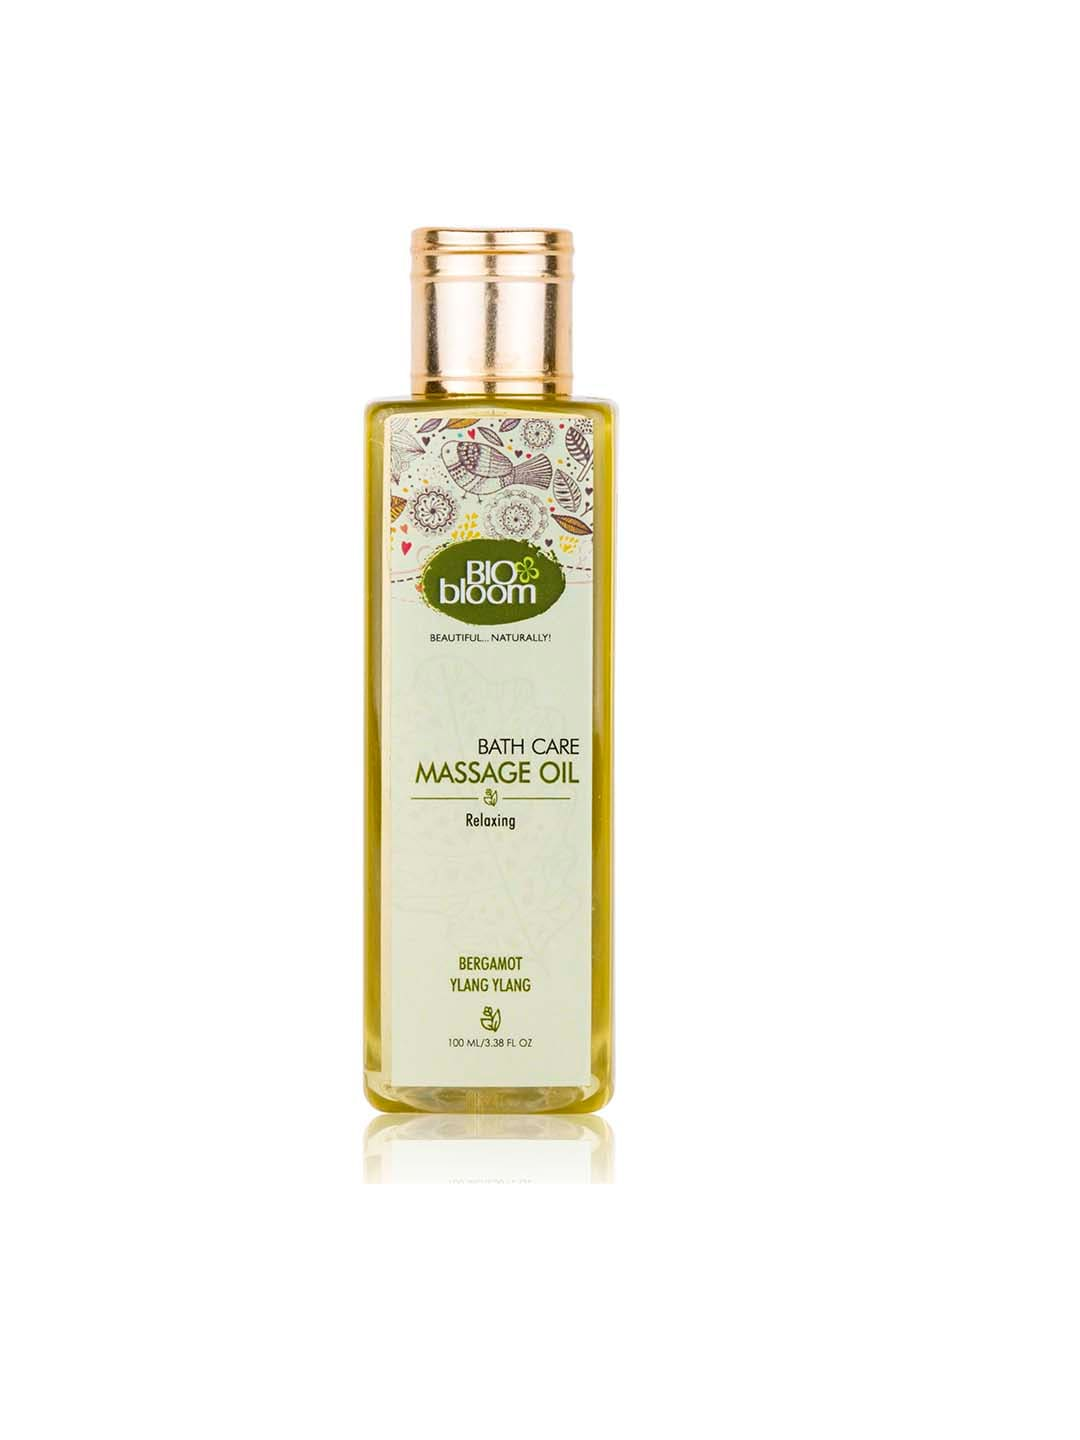 BioBloom Unisex Bath Care Massage Oil image